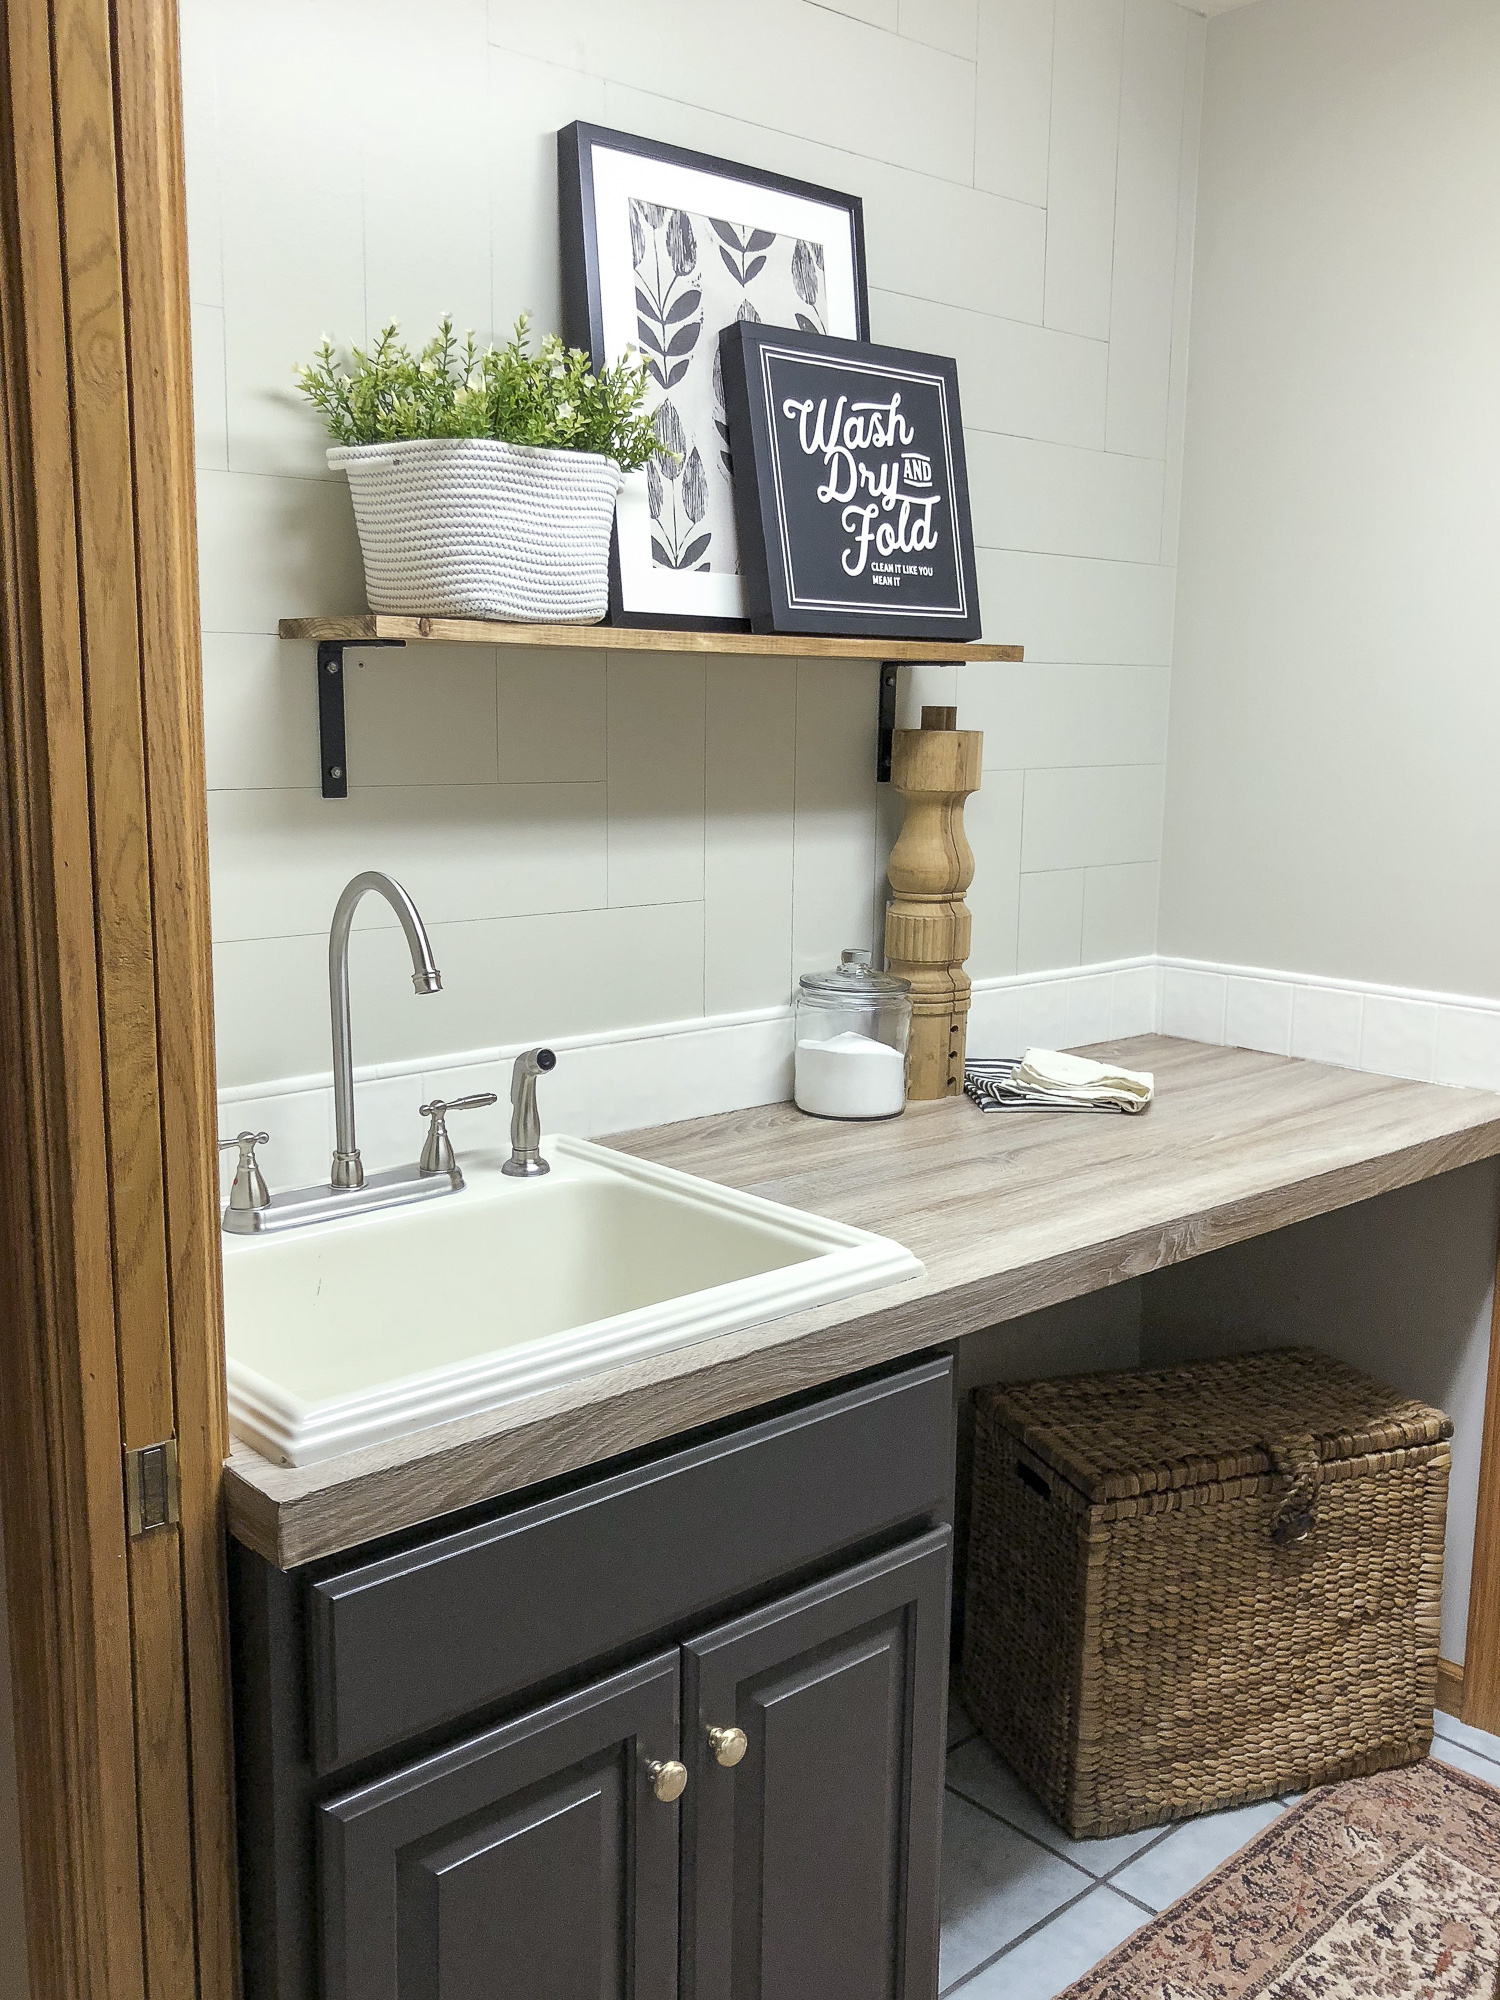 Laundry room sink with faux wood counter kellyelko.com #laundryroom #mudroom #diyideas